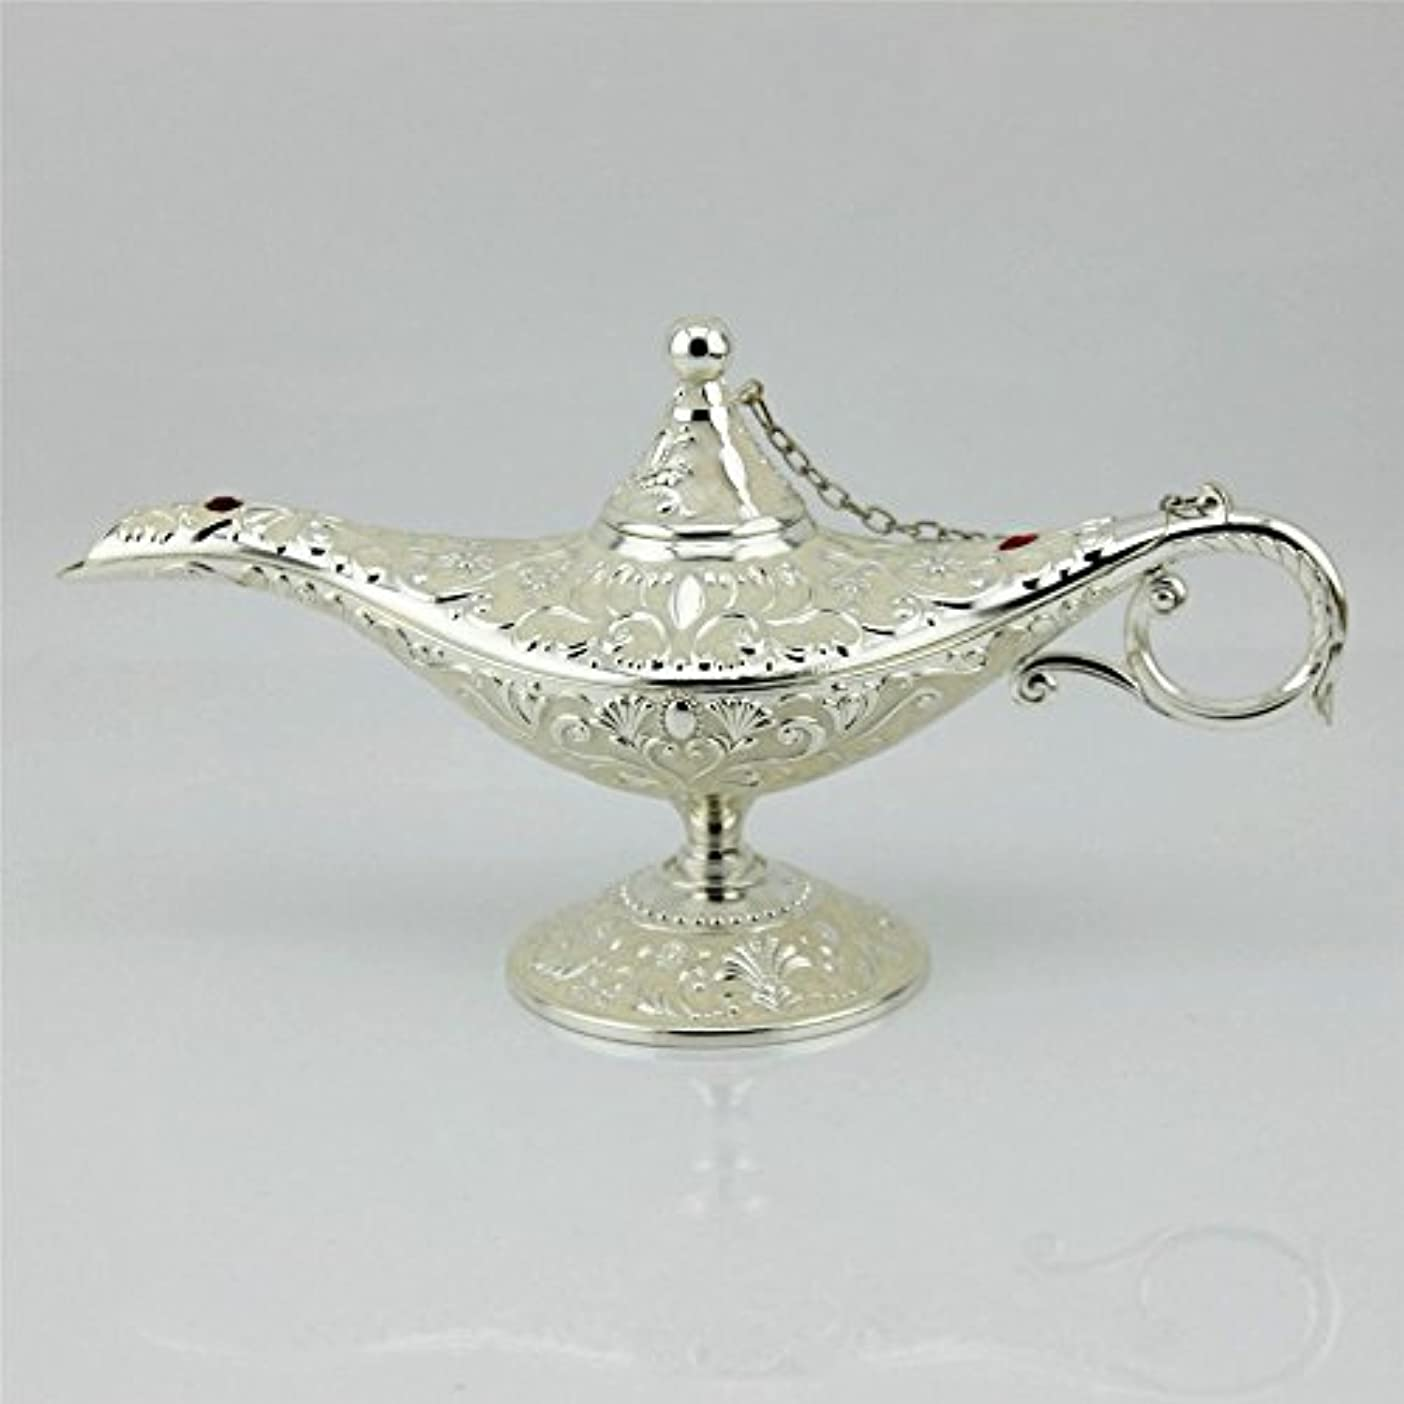 増幅する見つけるヘビーSY CraftsエナメルメタルAladdin Genie Lamps Incense Burners凡例Aladdin Magic Lamp